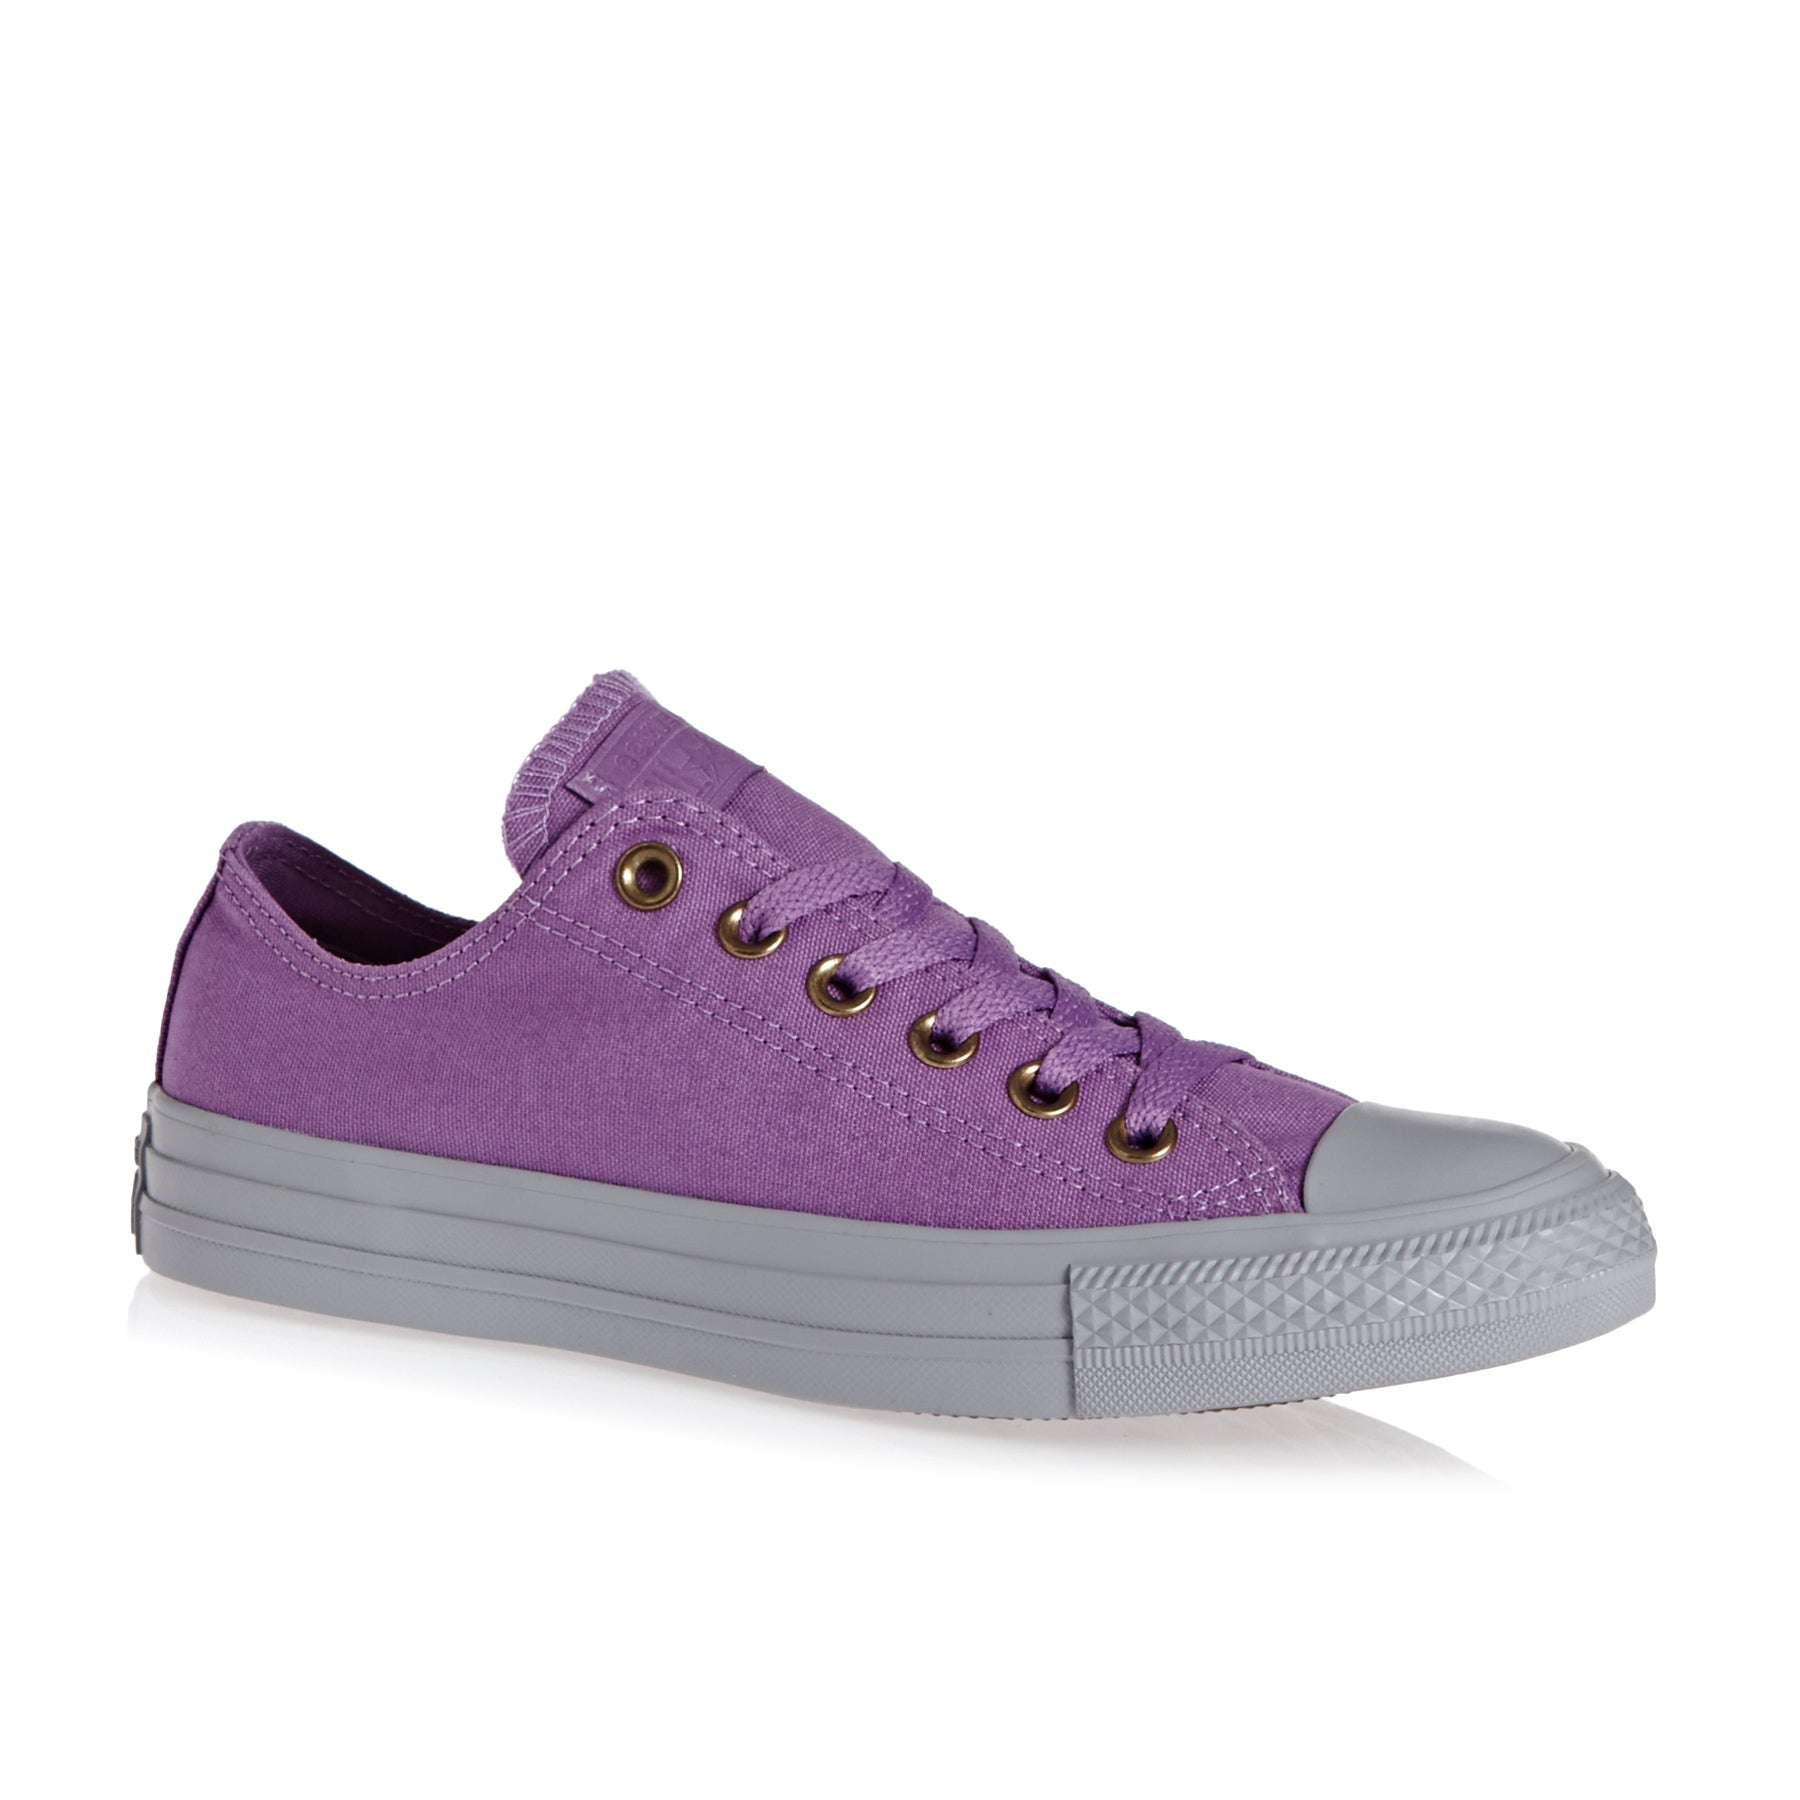 Converse Chuck Taylor All Stars OX Shoes - Dark Orchid Dark Orchid